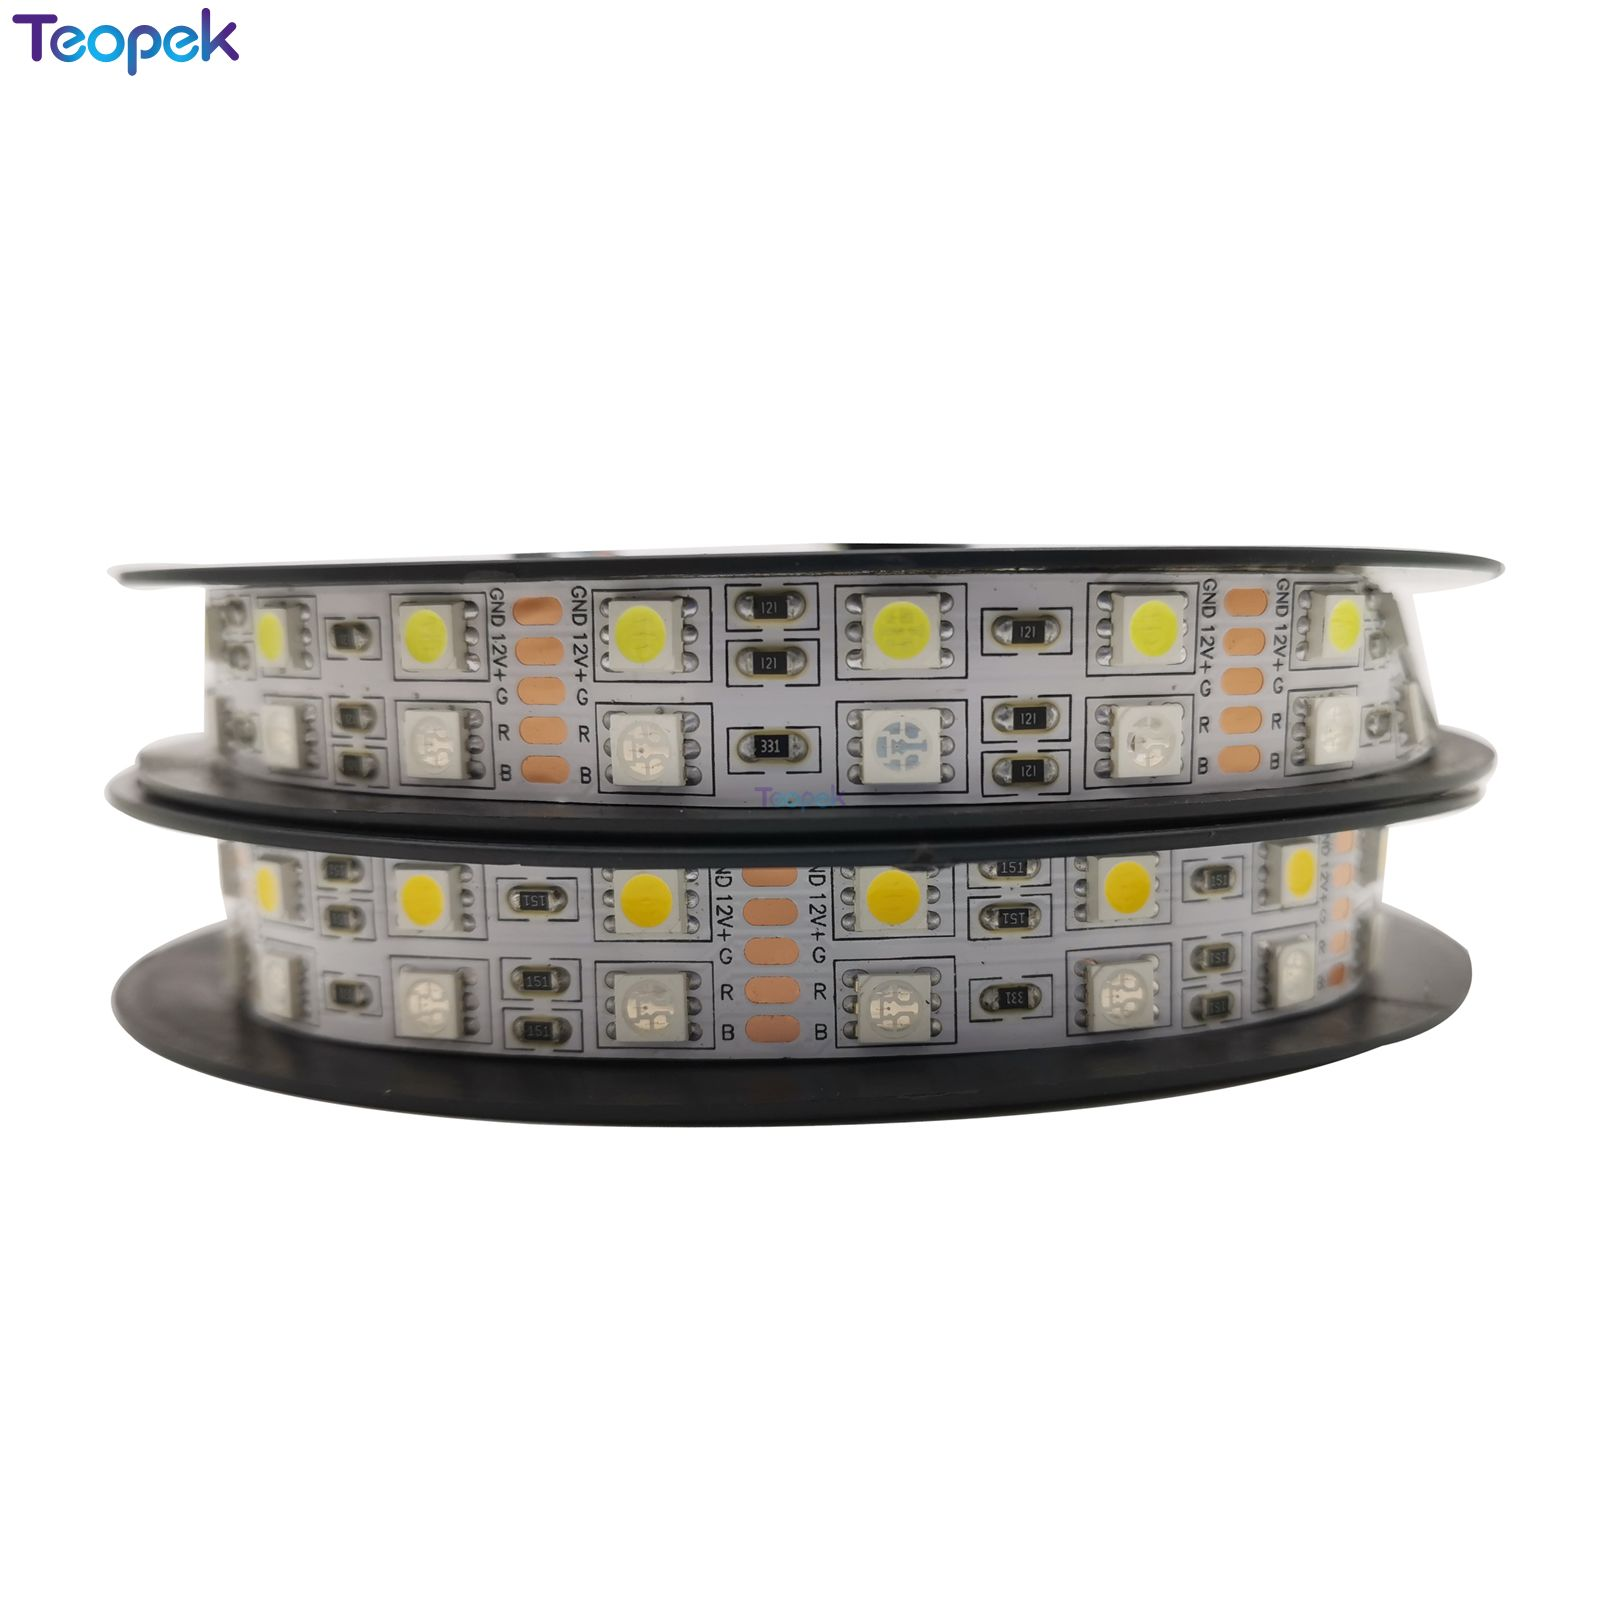 Double Row 5050 RGBW RGBWW RGB+Cool White Warm White Flexible LED Strips DC12V 24V 5M/roll 120led/M 600LEDs